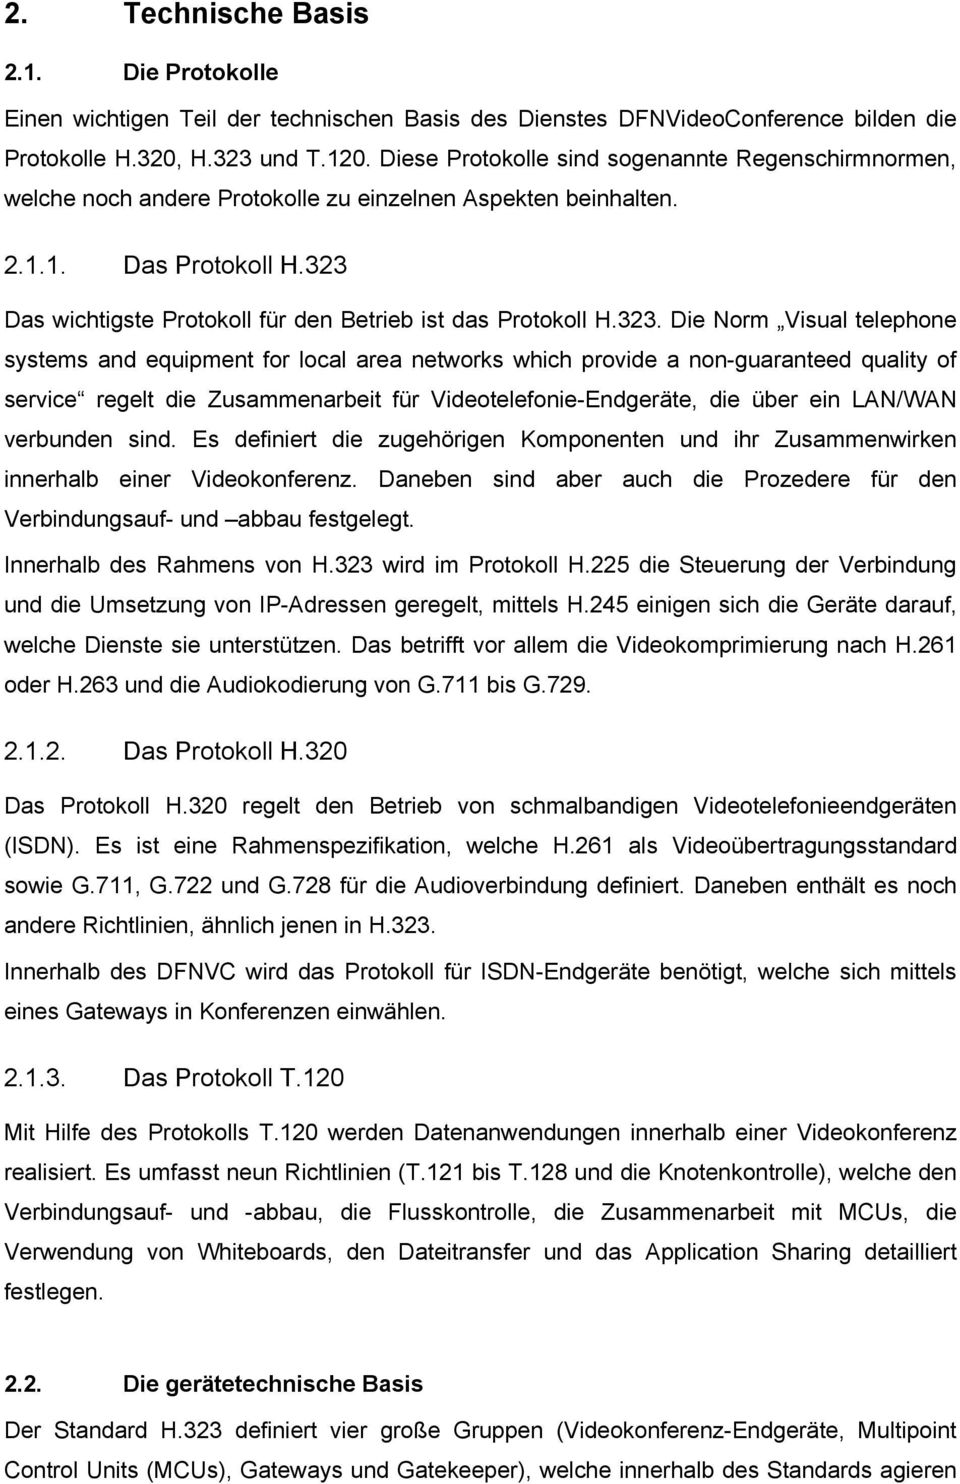 323 Das wichtigste Protokoll für den Betrieb ist das Protokoll H.323. Die Norm Visual telephone systems and equipment for local area networks which provide a non-guaranteed quality of service regelt